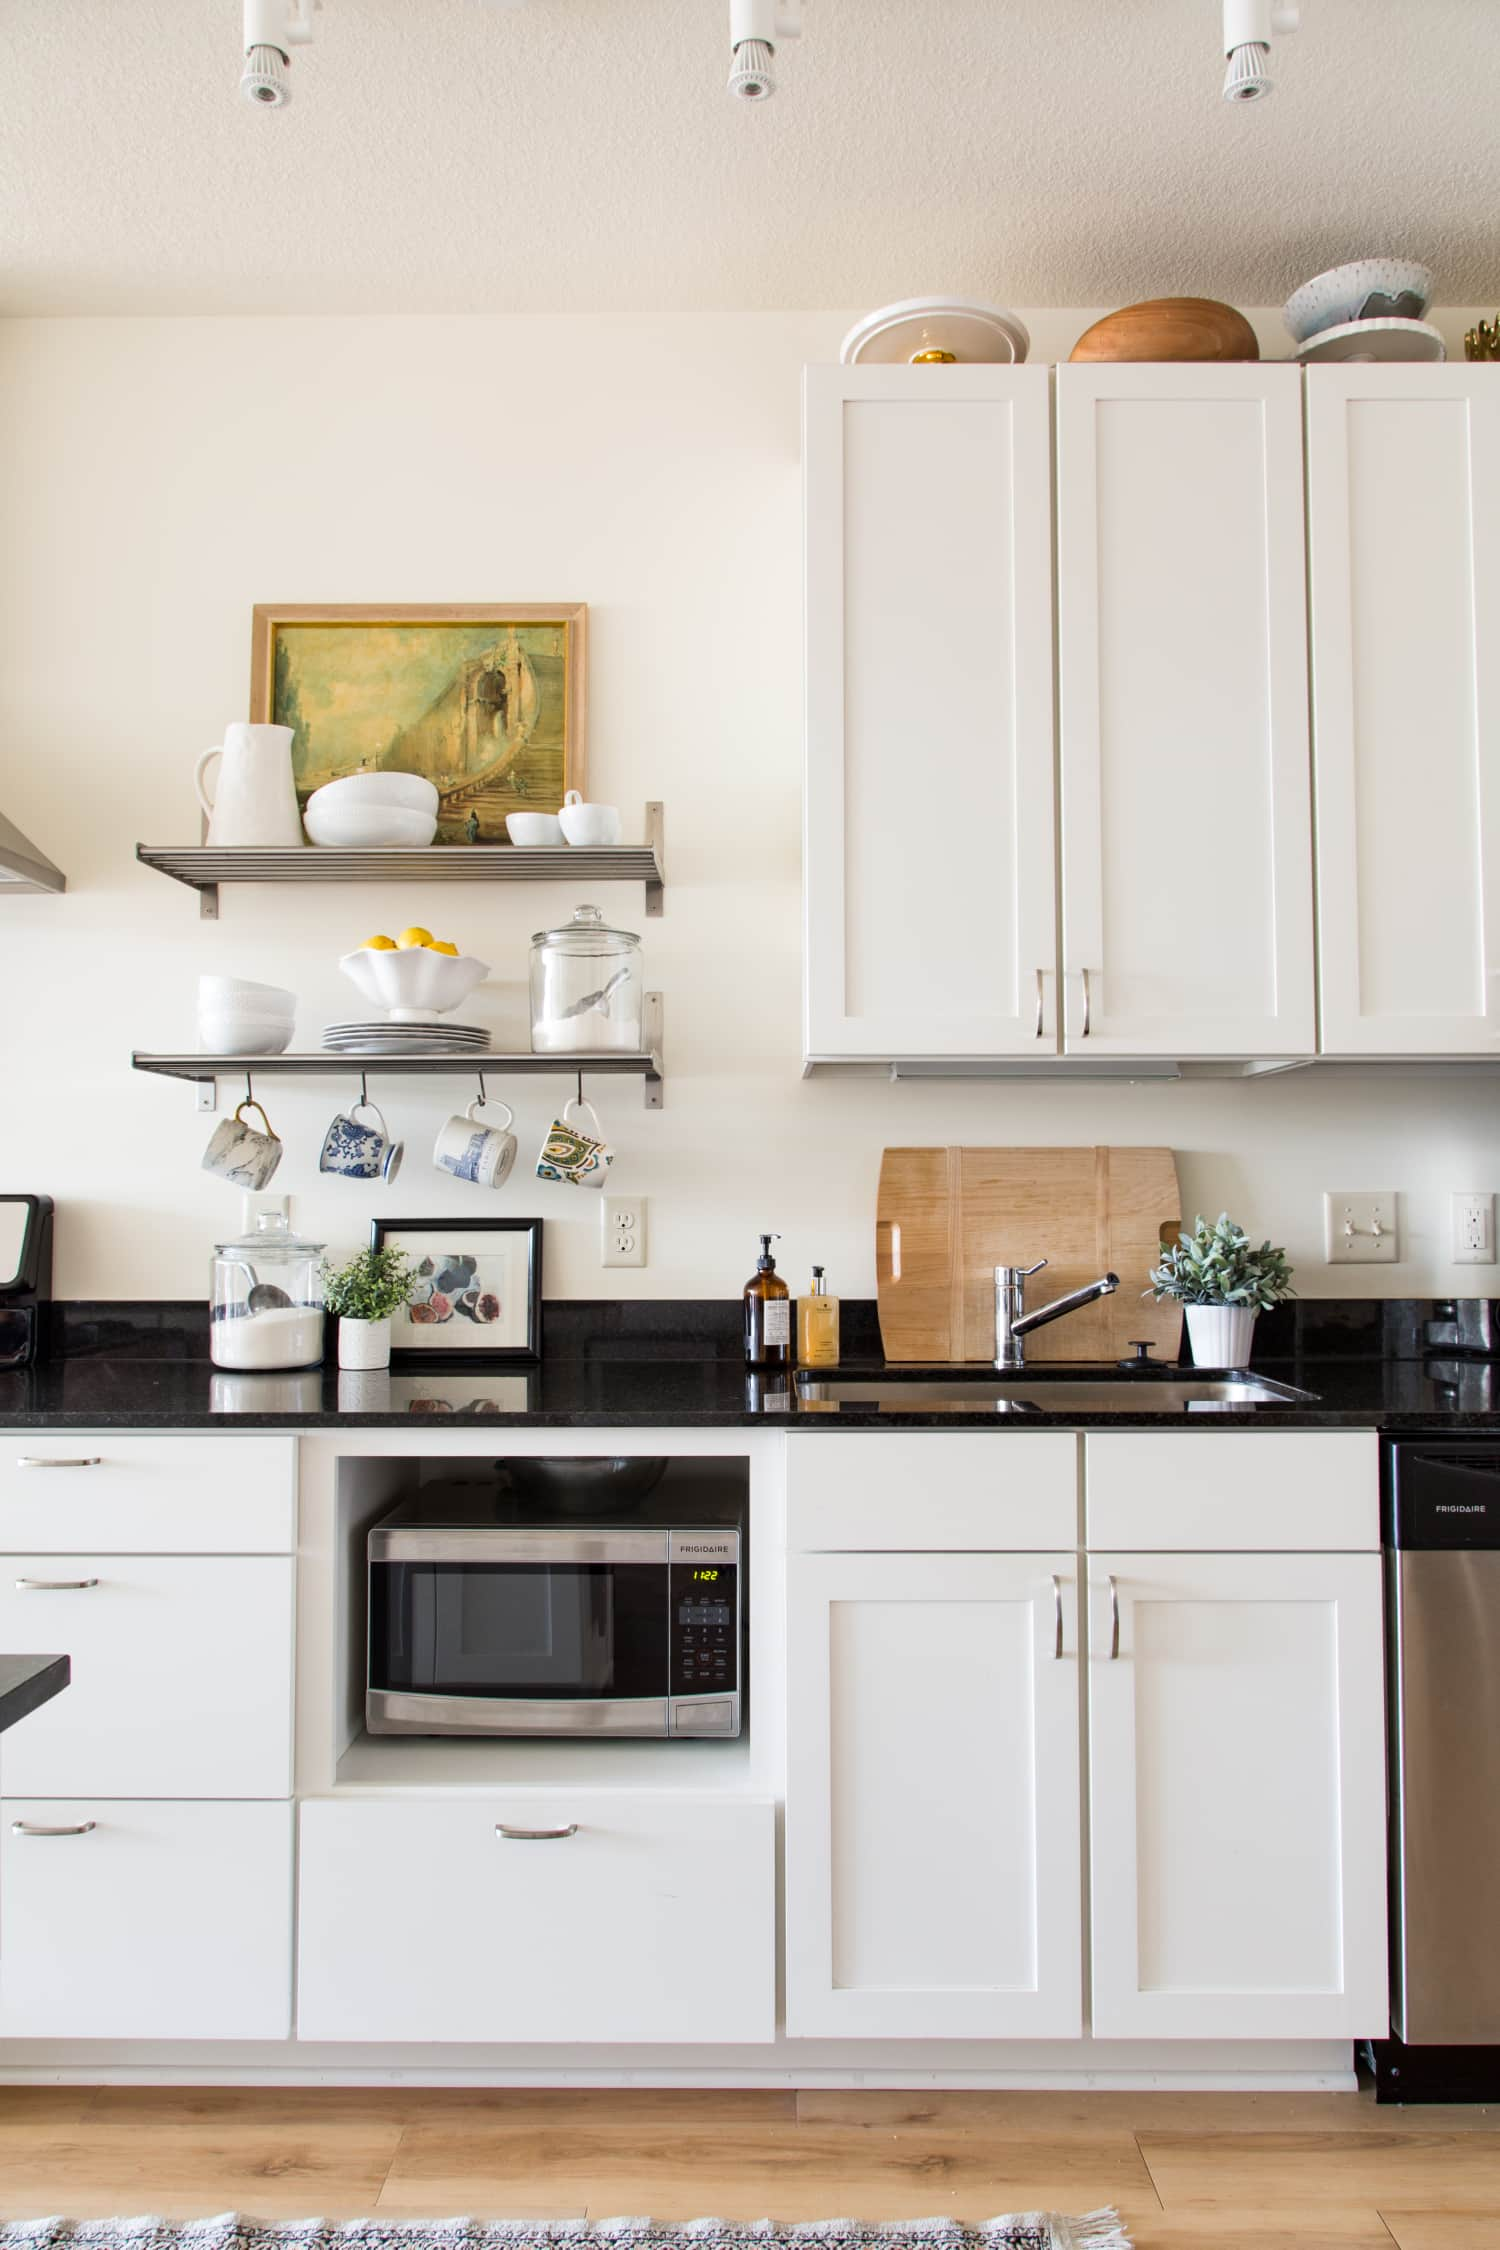 30+ Shortcuts & Strategies to Get Your Home Cleaner Faster